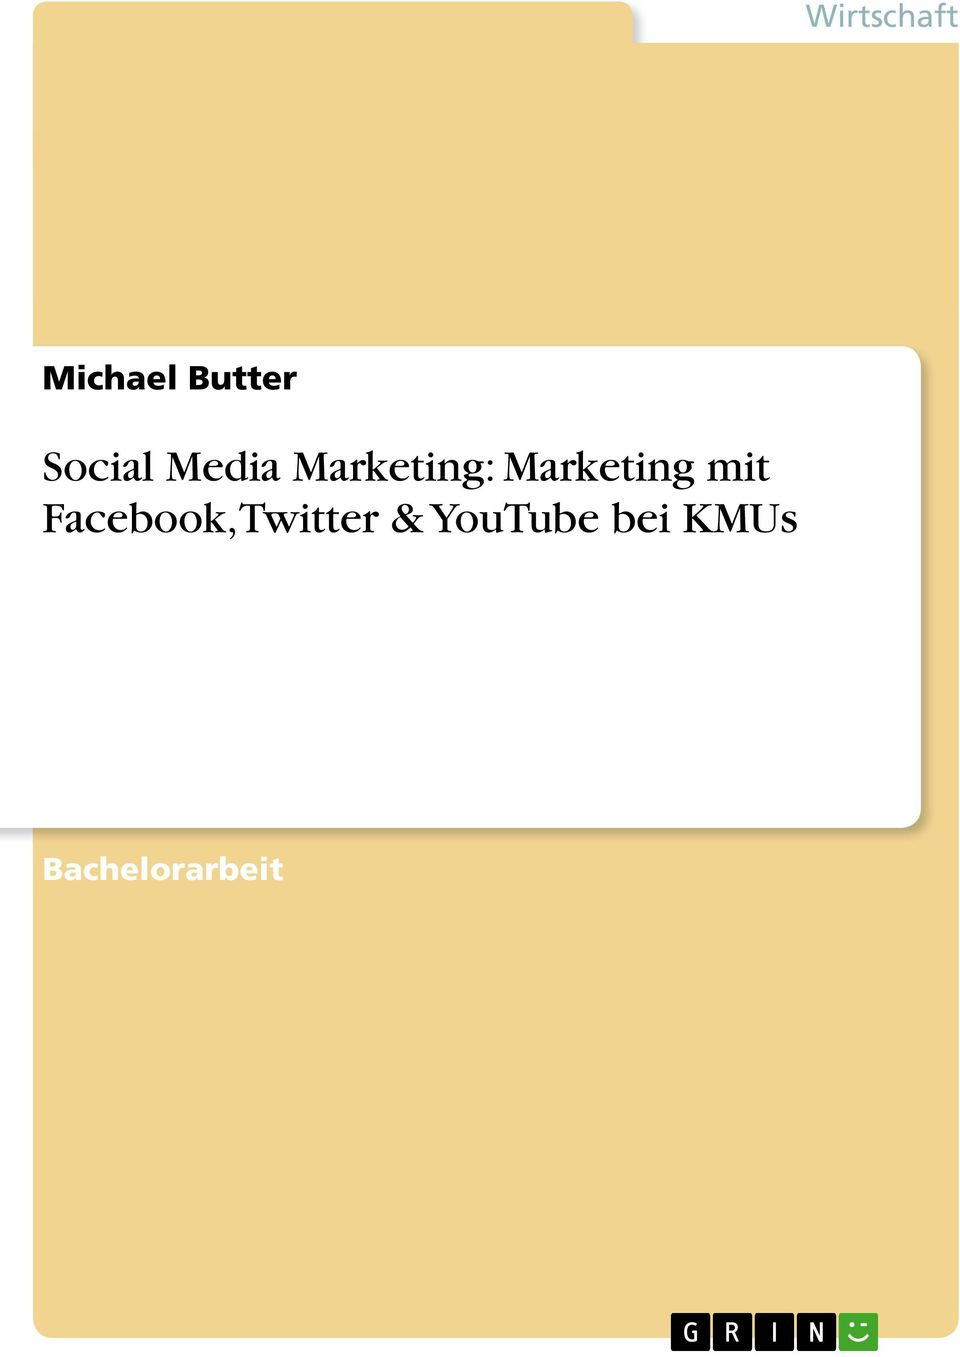 Marketing mit